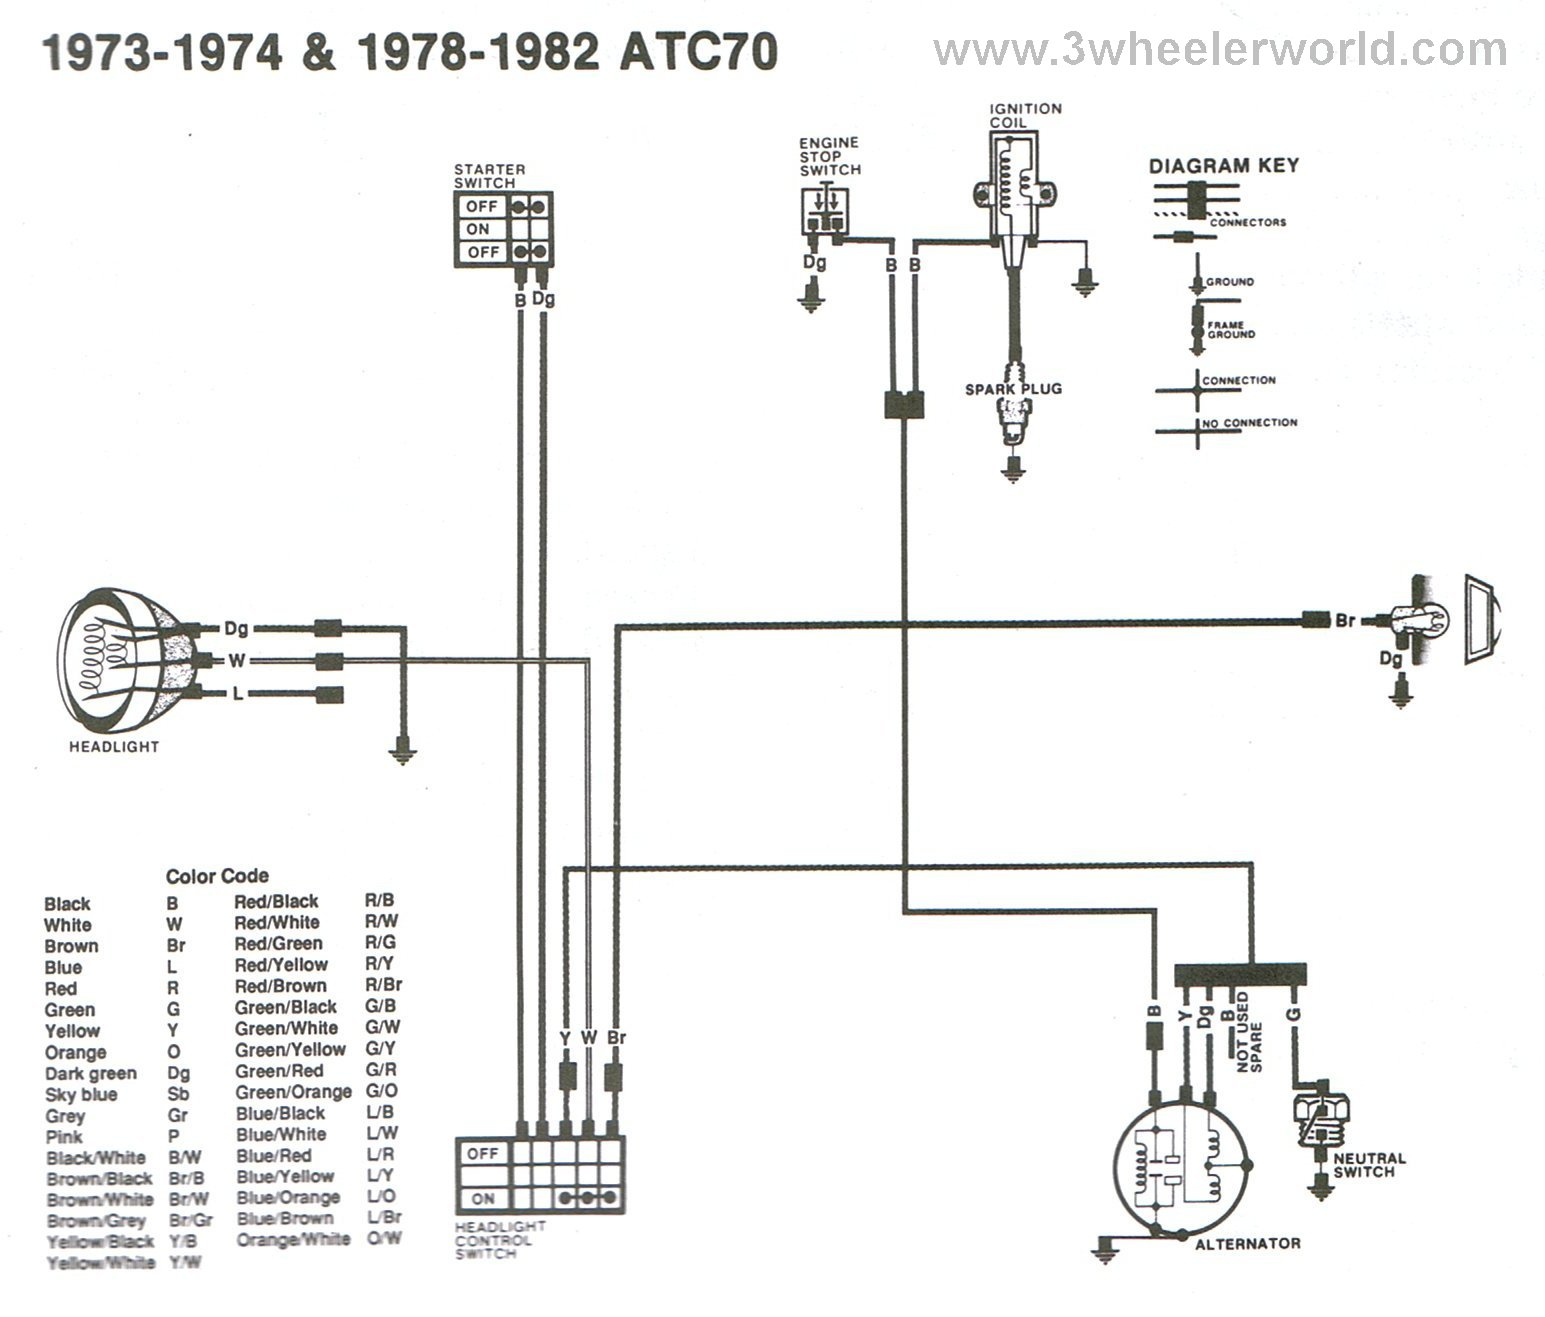 3wheeler World Honda Atc Wiring Diagrams Harley Davidson Police Diagram Article Preview